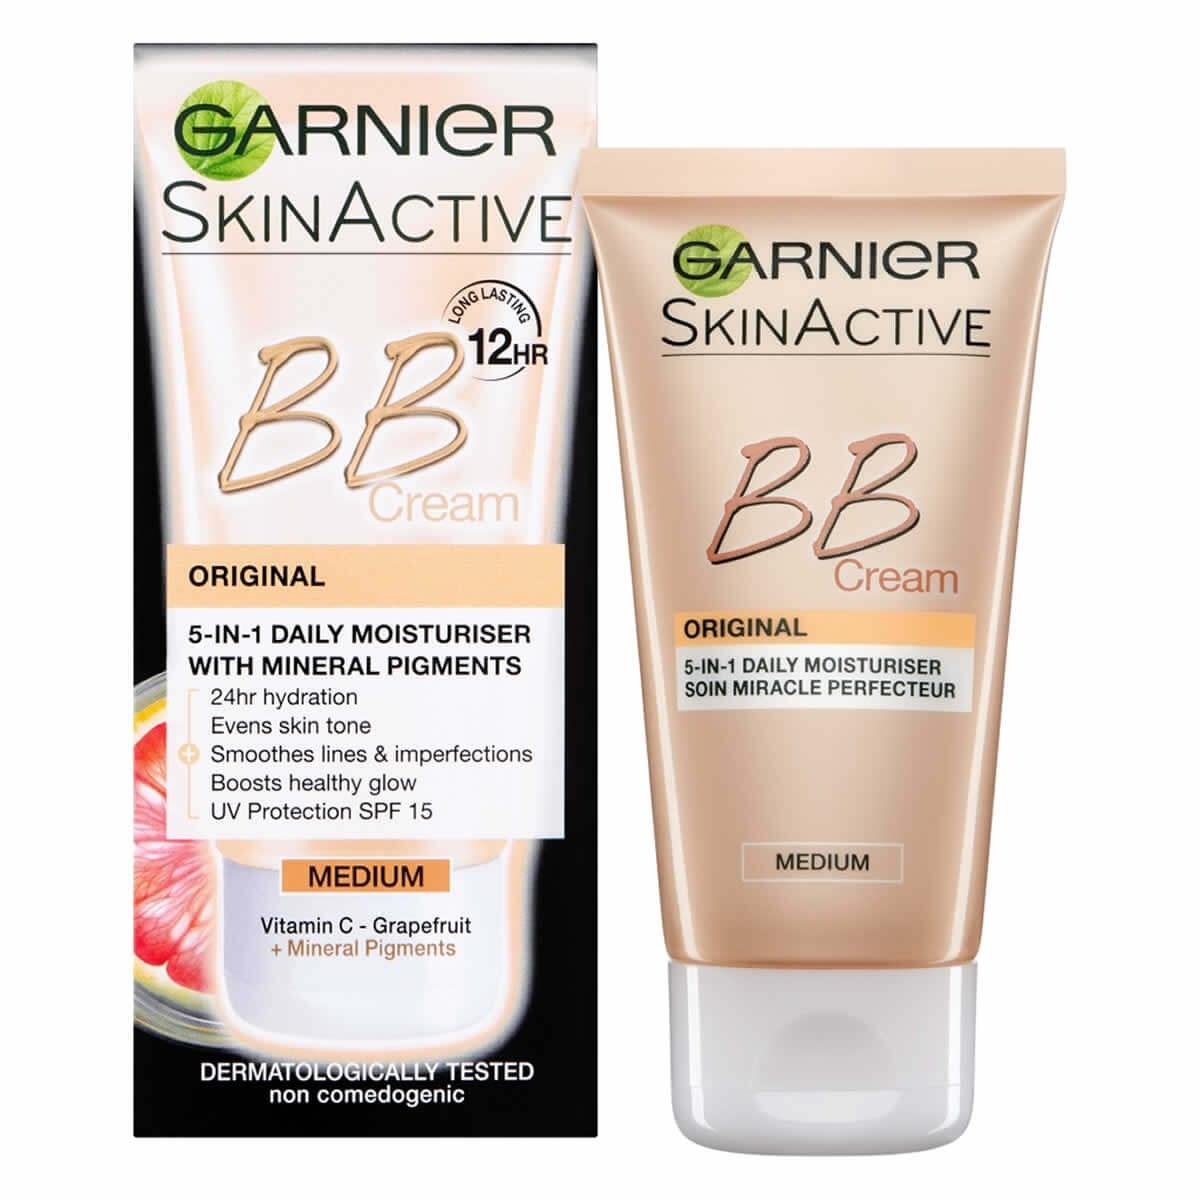 Garnier SkinActive BB Cream Original 5-in-1 Daily Moisturiser Medium